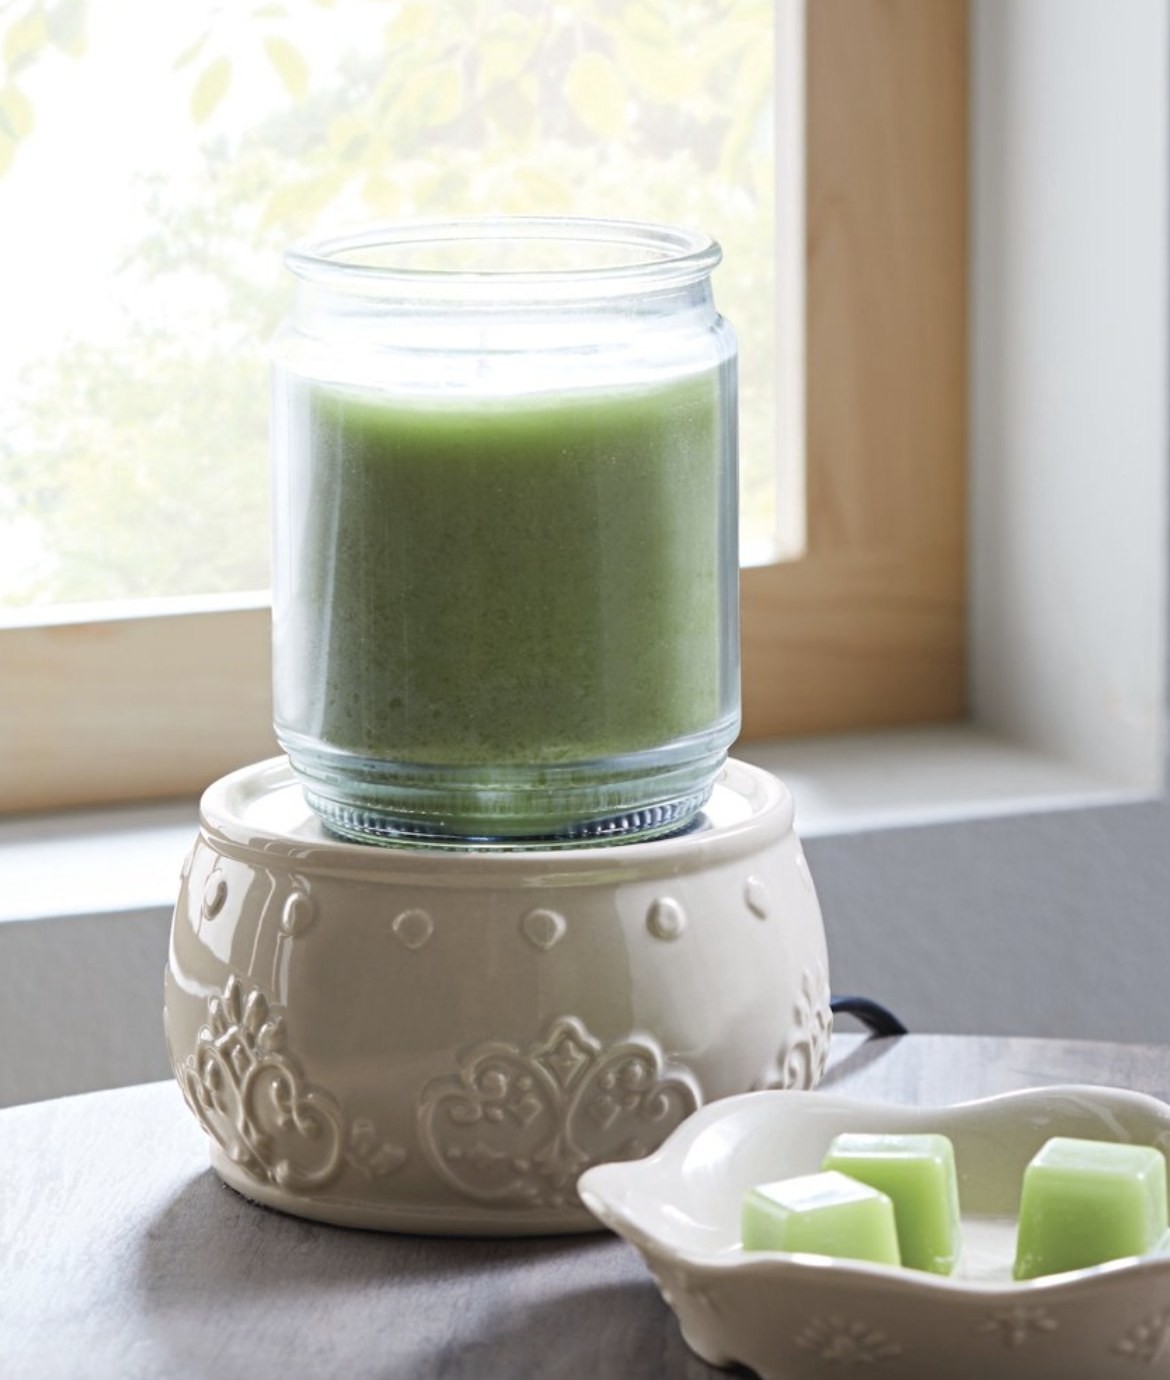 The ceramic warmer has ornate and beautiful designs